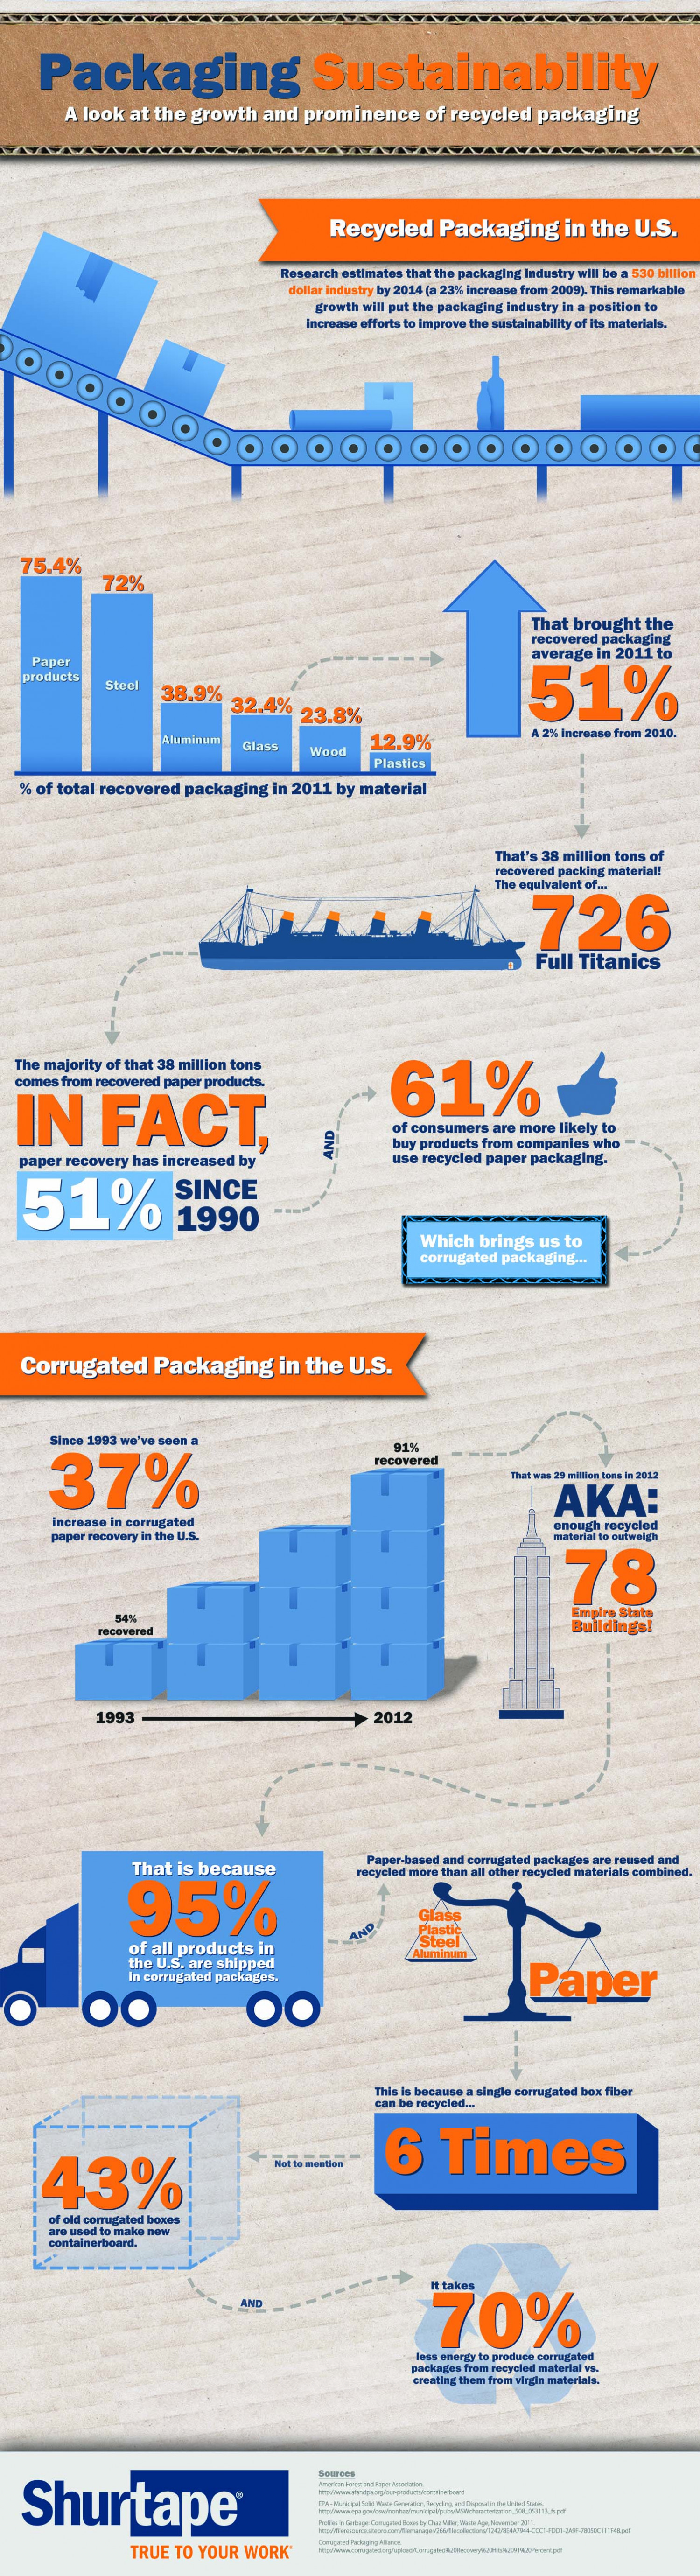 Packaging Sustainability in the U.S. Infographic